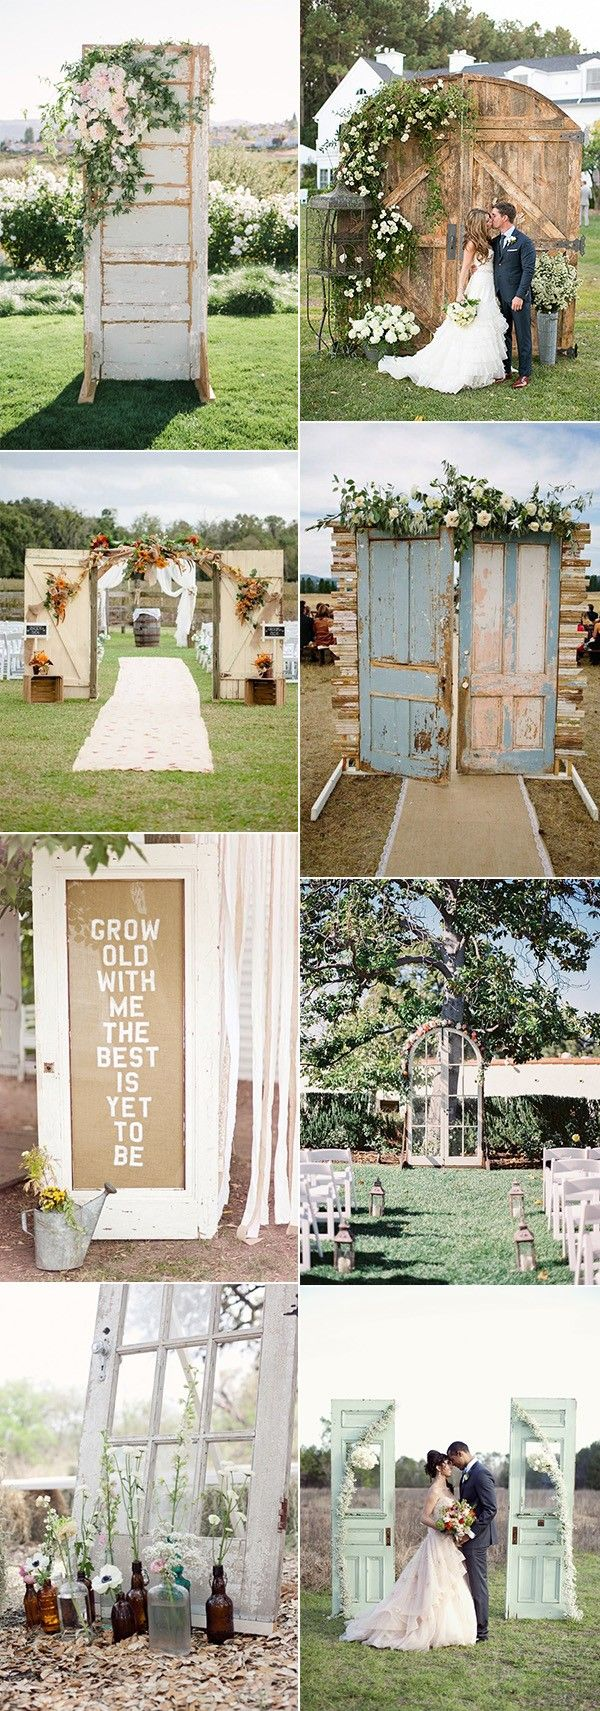 Wedding entry decoration ideas   Wedding Decoration Ideas with Vintage Old Doors  Page  of